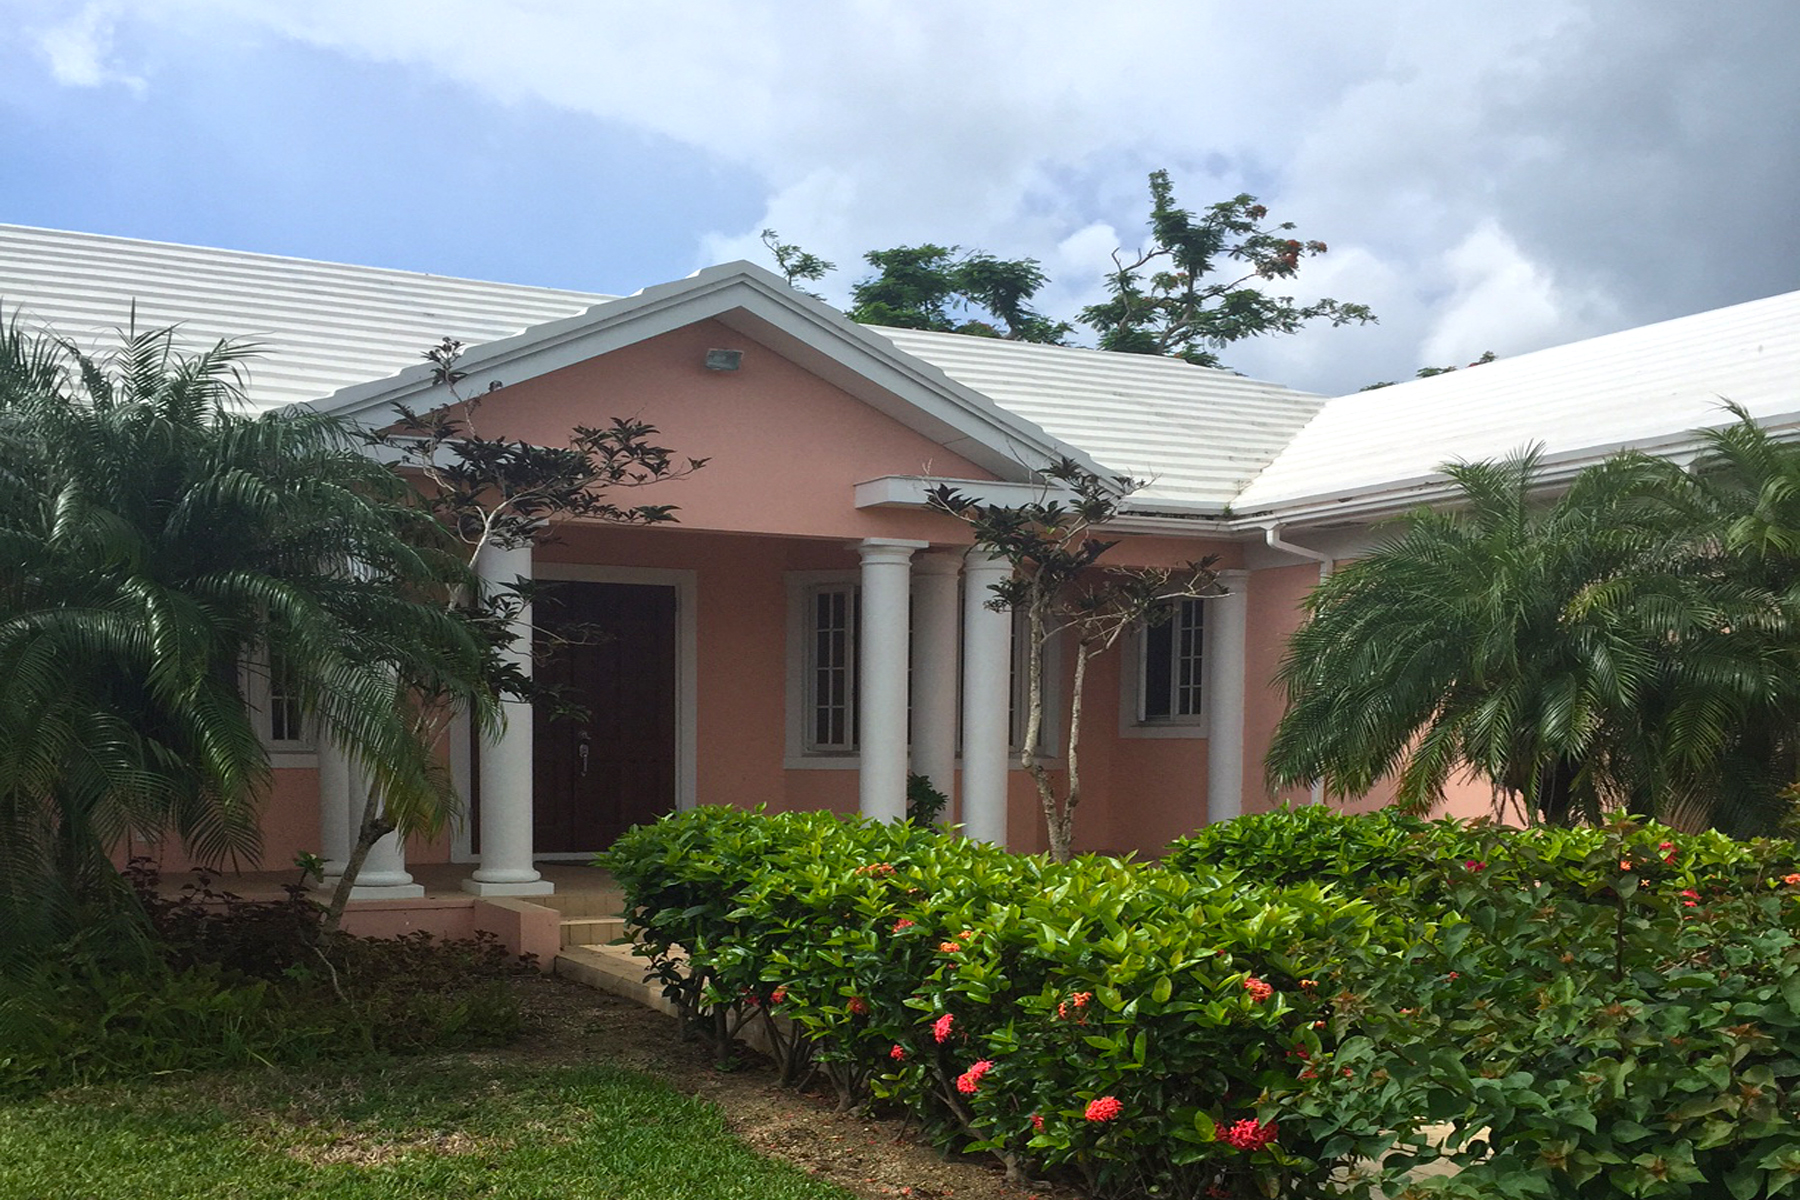 Single Family Home for Rent at Lyford Cay Rental Home Lyford Cay, Nassau And Paradise Island Bahamas